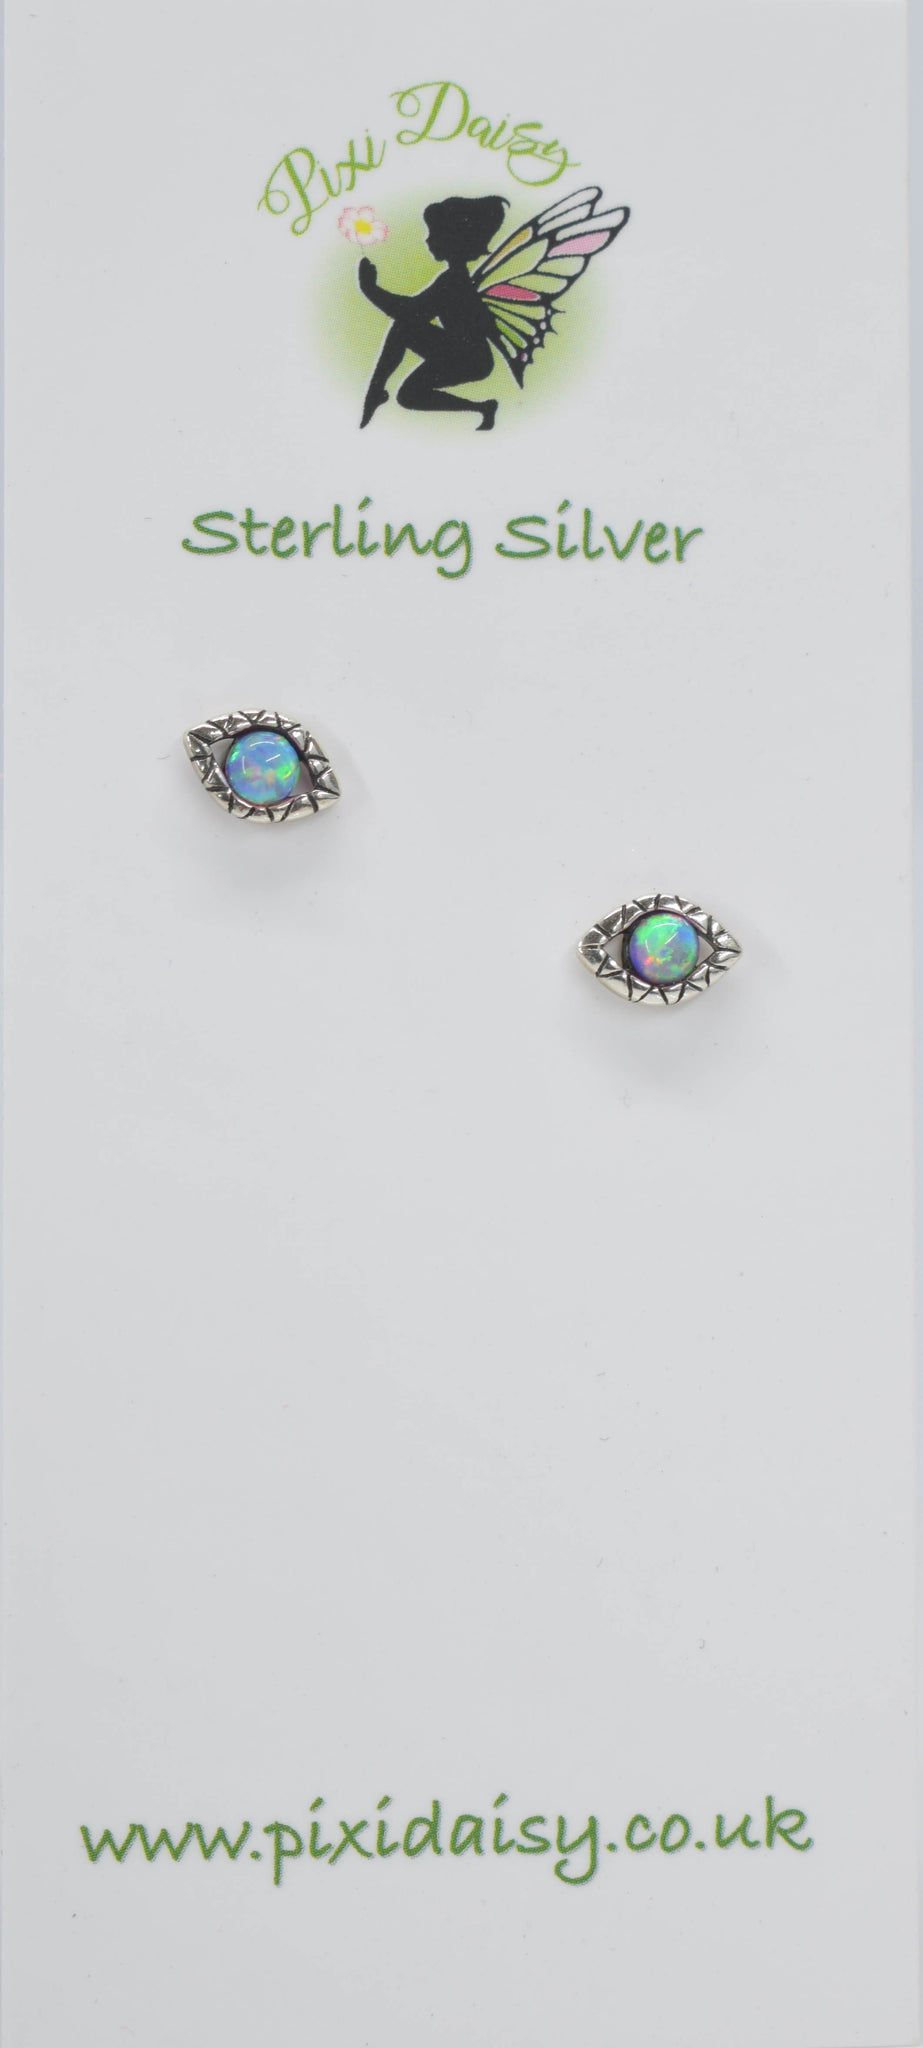 Bubblegum Eye Ear Studs - Pixi Daisy